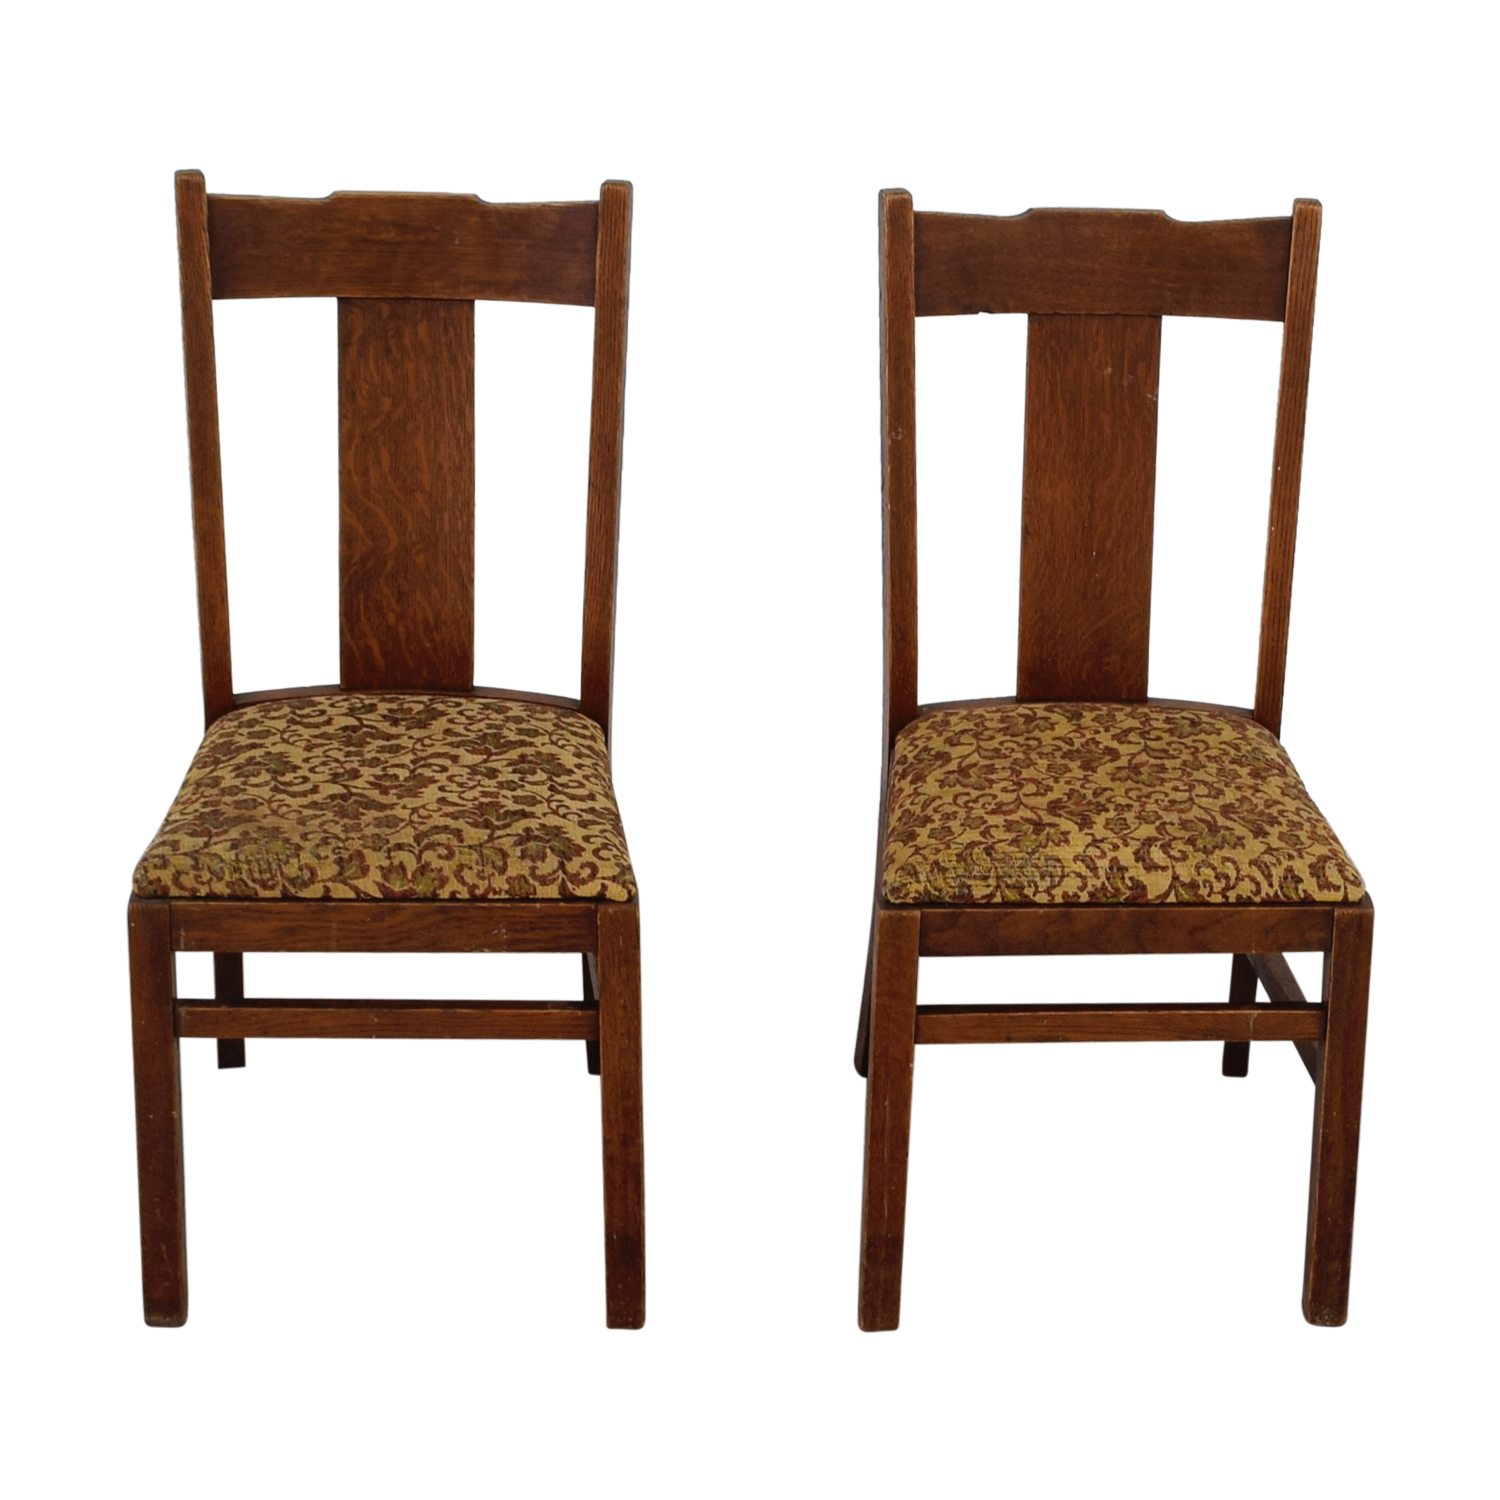 buy  Antique Mission Upholstered Chairs online